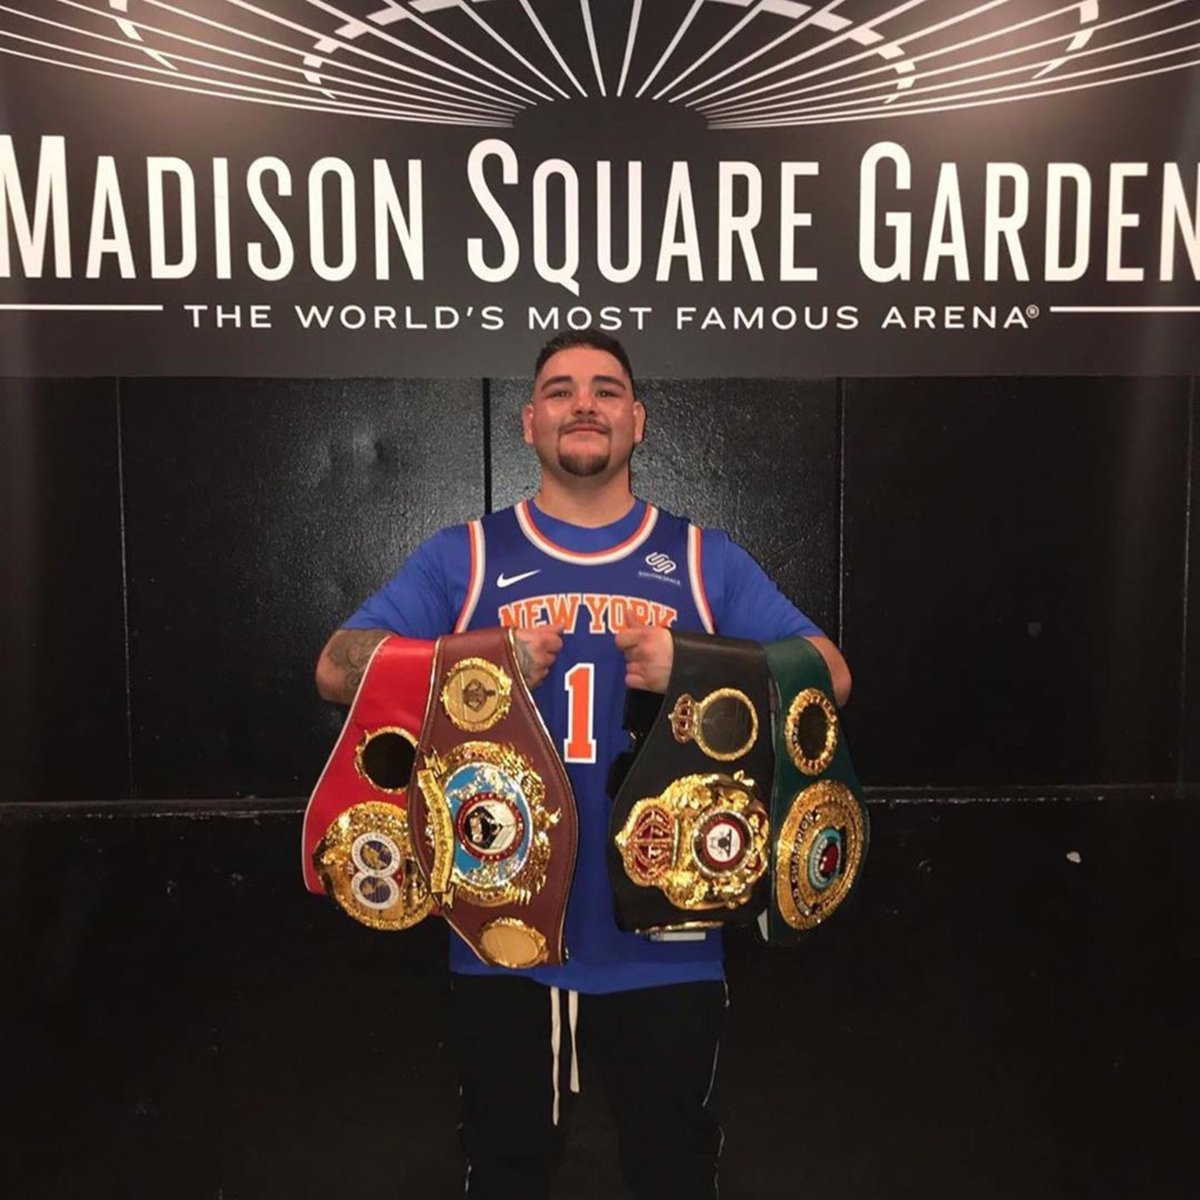 A huge congratulations to you @Andy_destroyer1 for your upset win last night. You've been blessed to come out of the struggle and to become the 1st Mexican Heavyweight Champion Ever!Wow, that's amazing and I'm wishing you many more blessings to come.